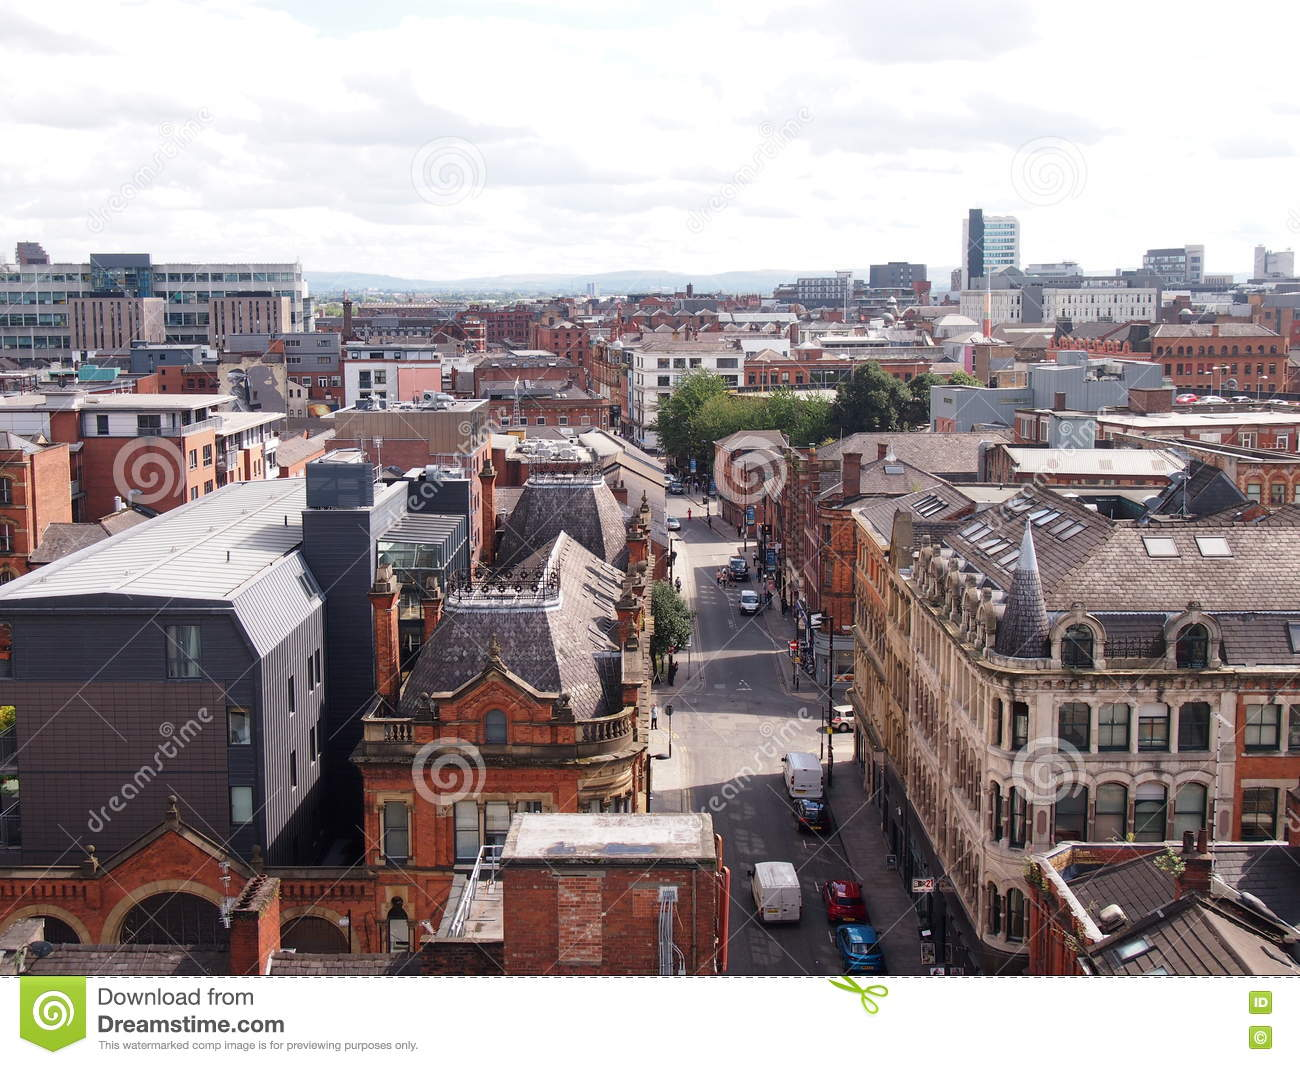 Rooftops of Manchester, England